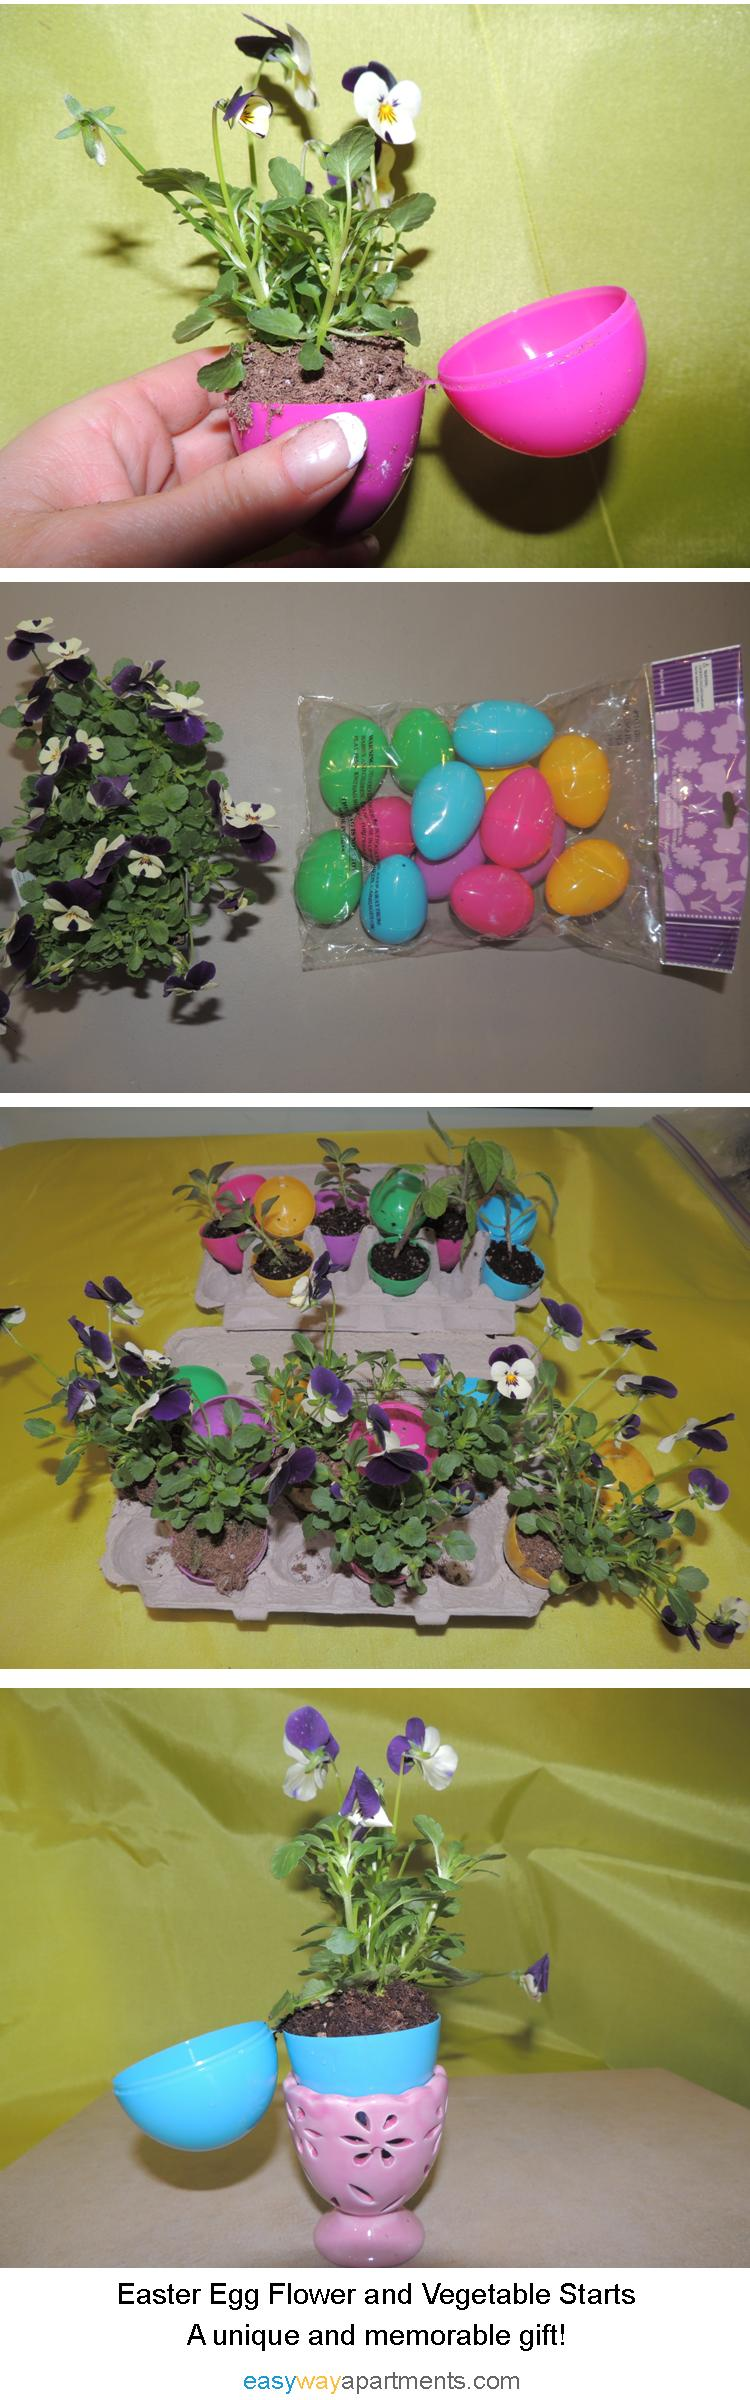 Easter Egg Flower or Vegetable Starts- The Perfect Gift! EasyWayApartments.com